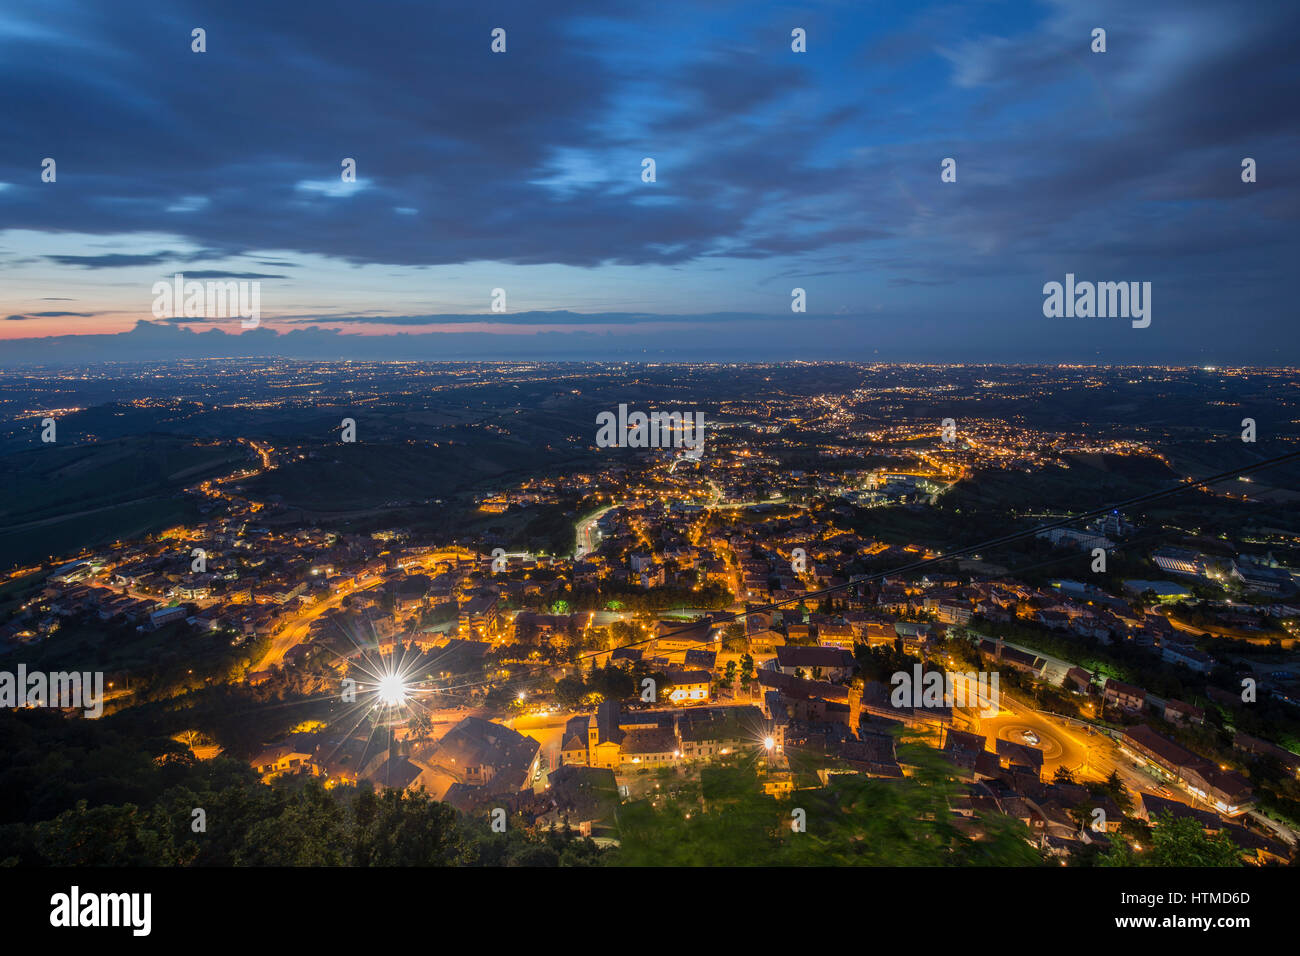 San Marino, View from the Monte Titano at night - Stock Image